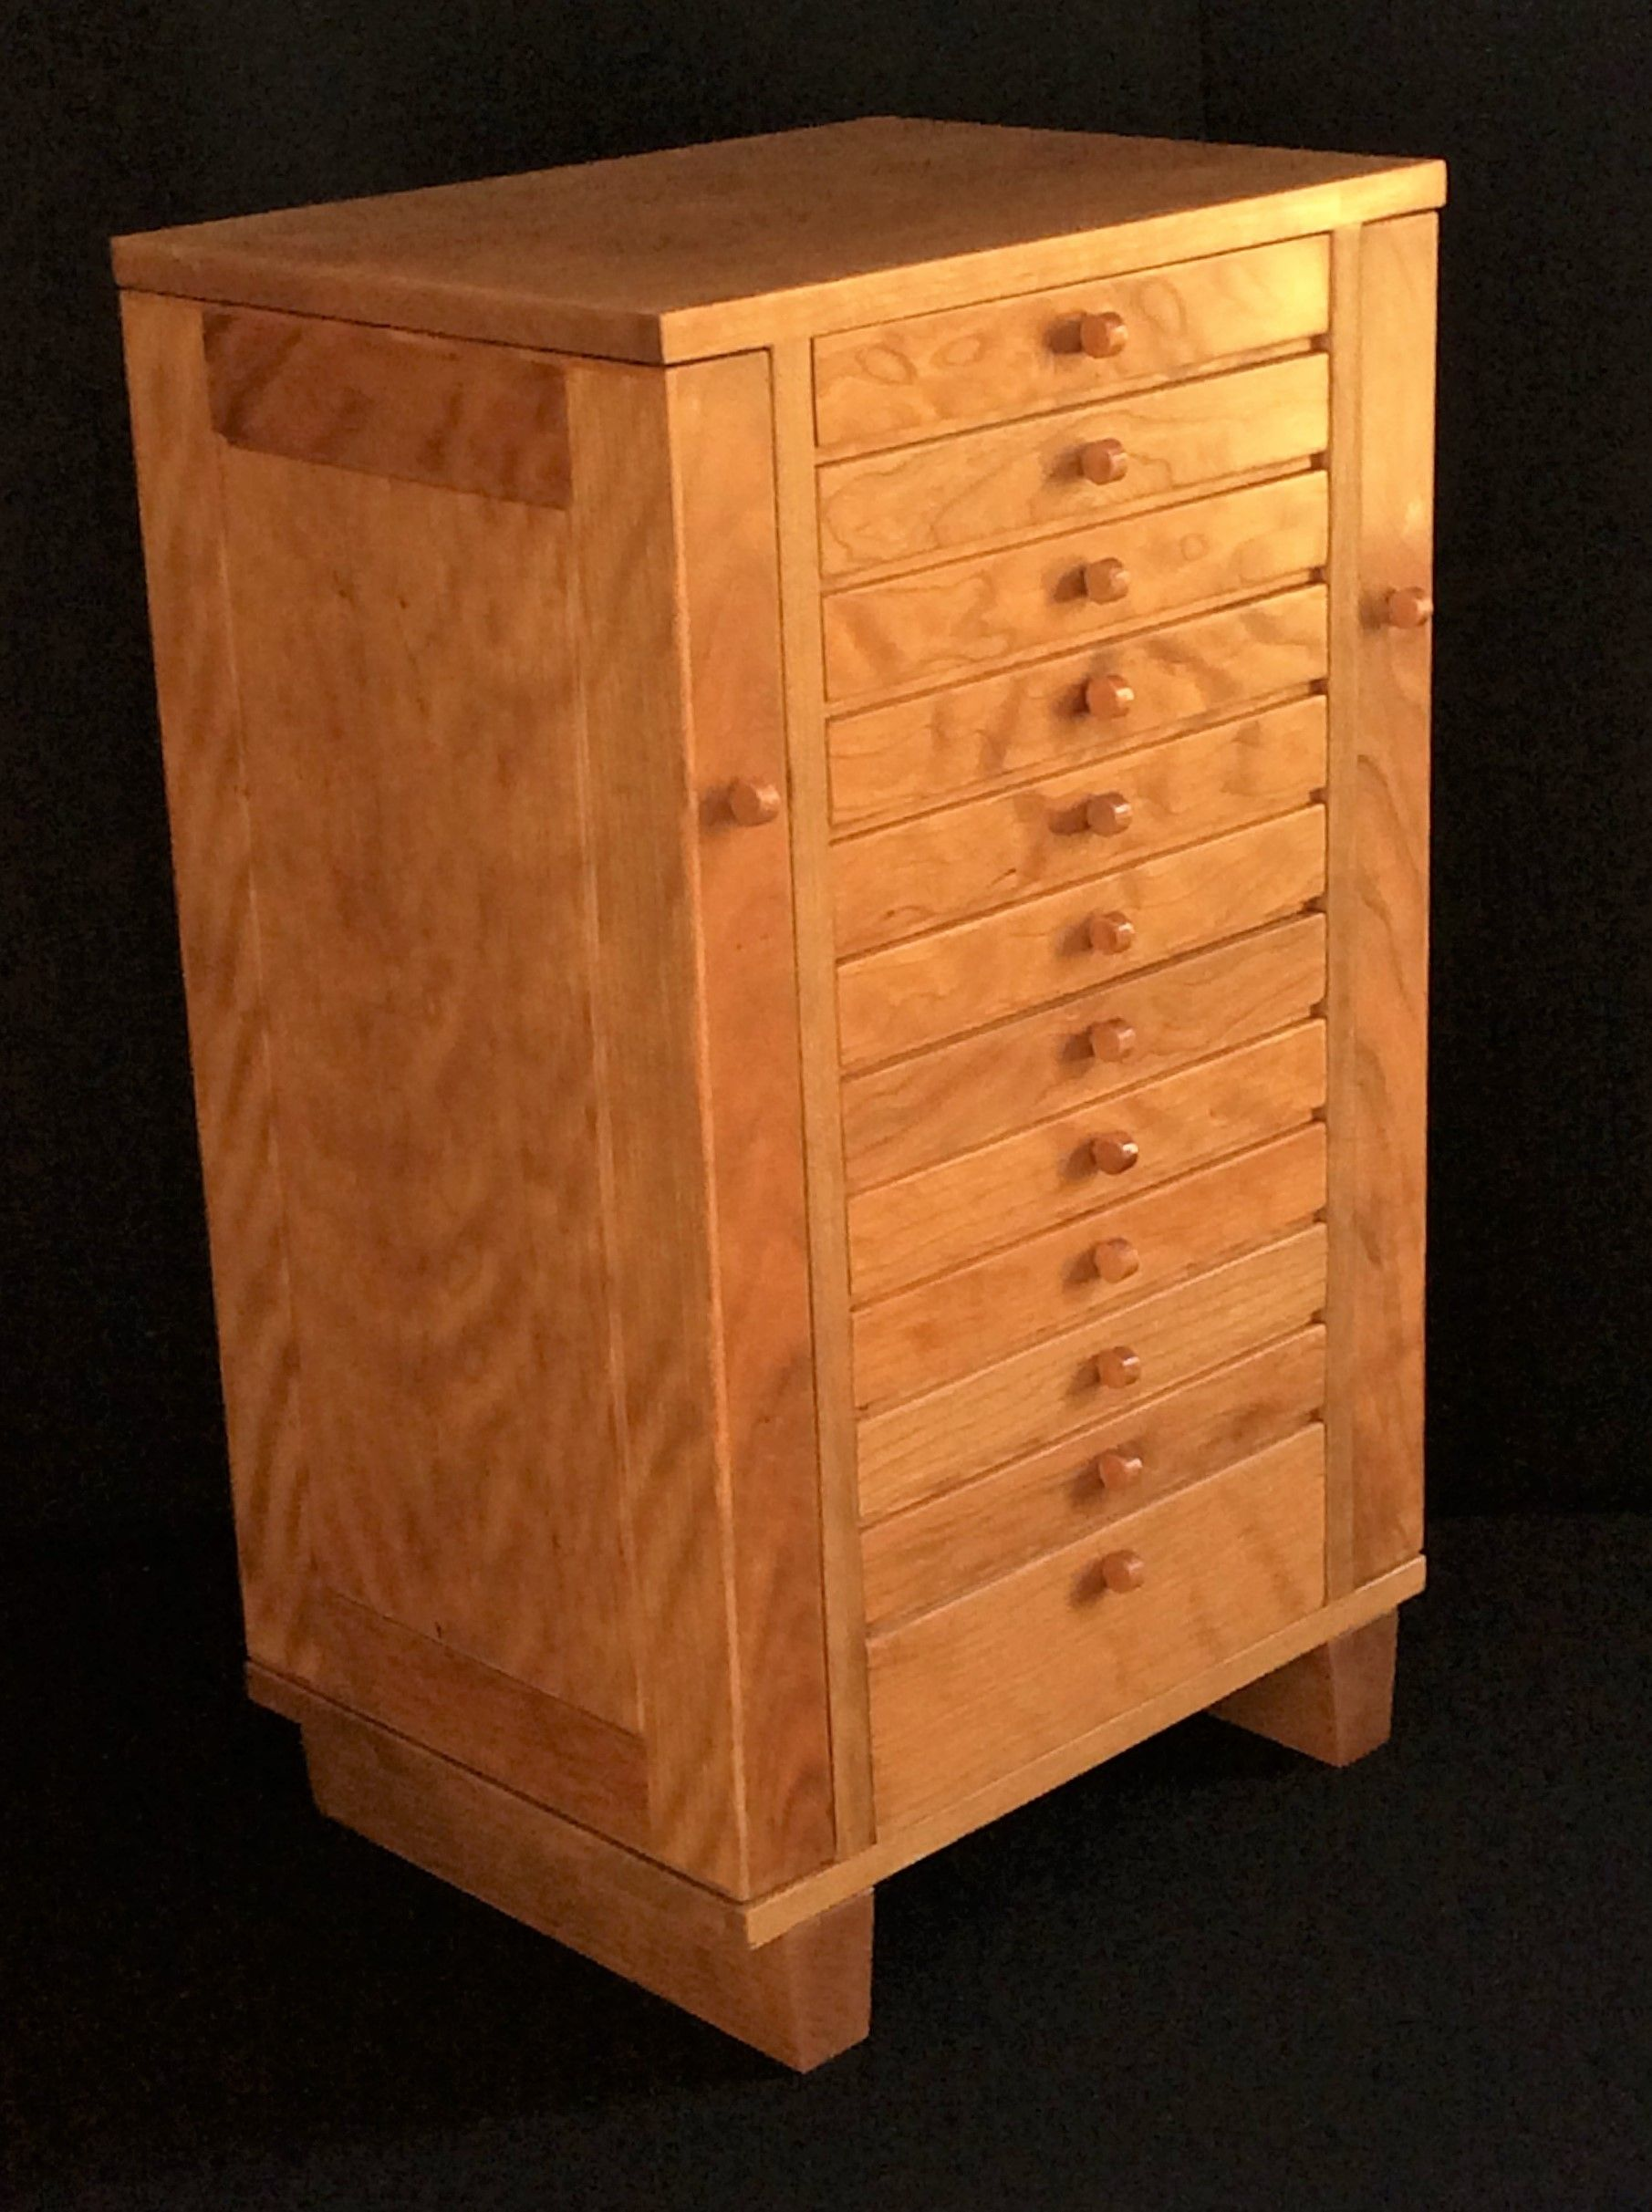 A Small Jewelry Armoire. It Is Tall And Made From Solid Cherry Wood.